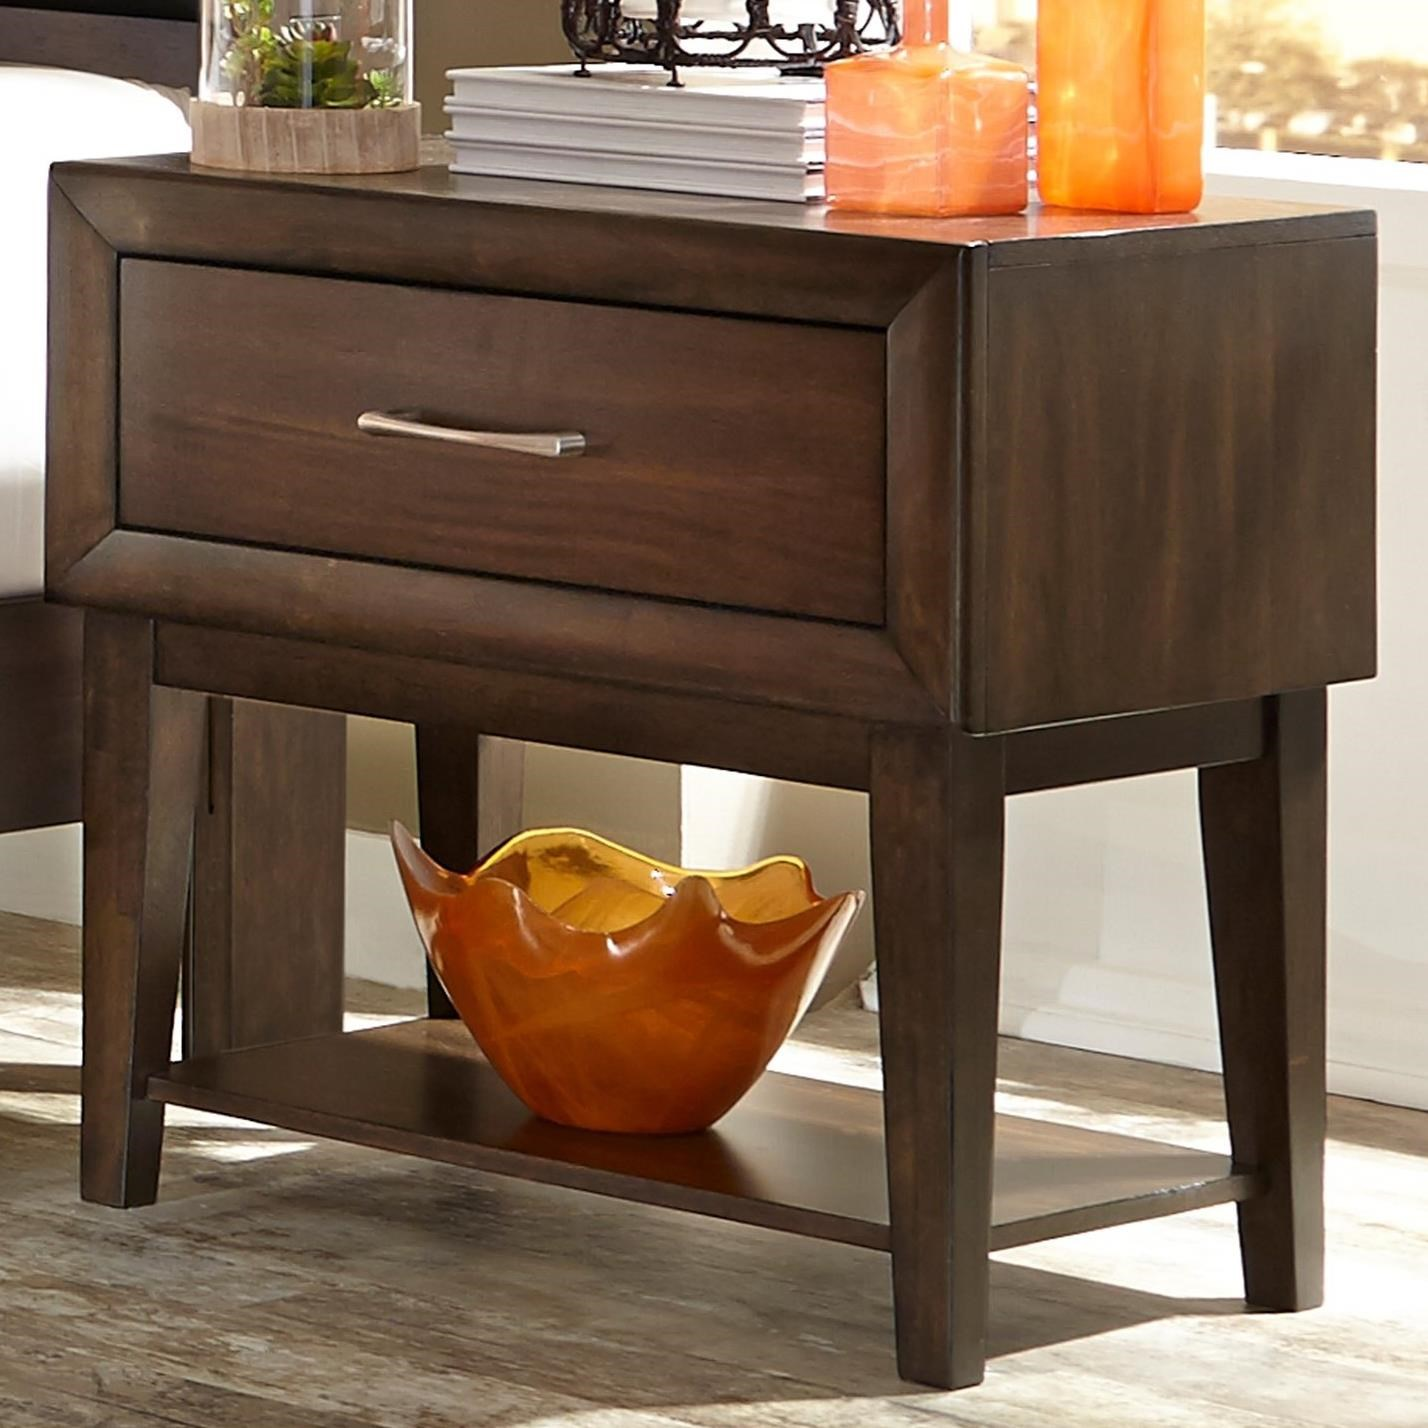 Liberty Furniture Hudson Square Bedroom 1 Drawer Night Stand - Item Number: 365-BR61